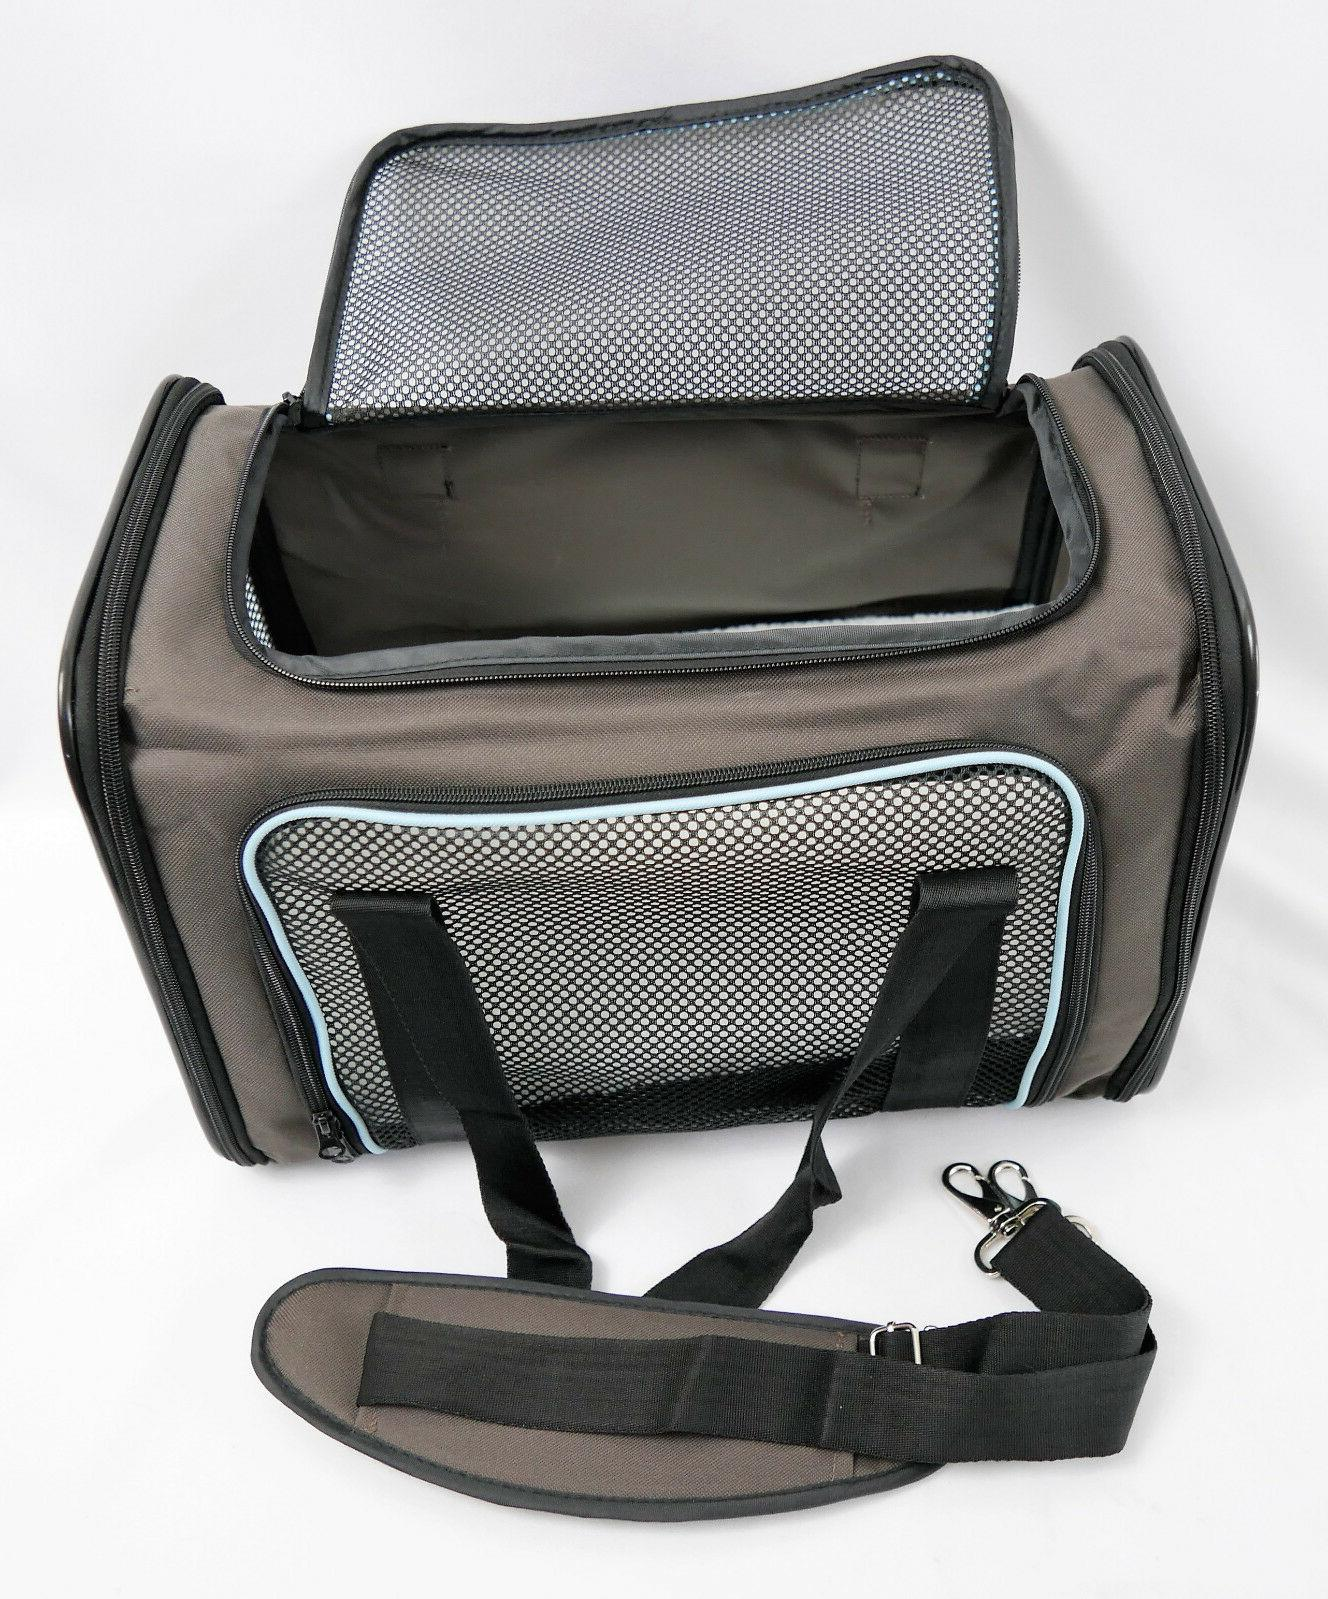 x zone pet airline approved pet carrier